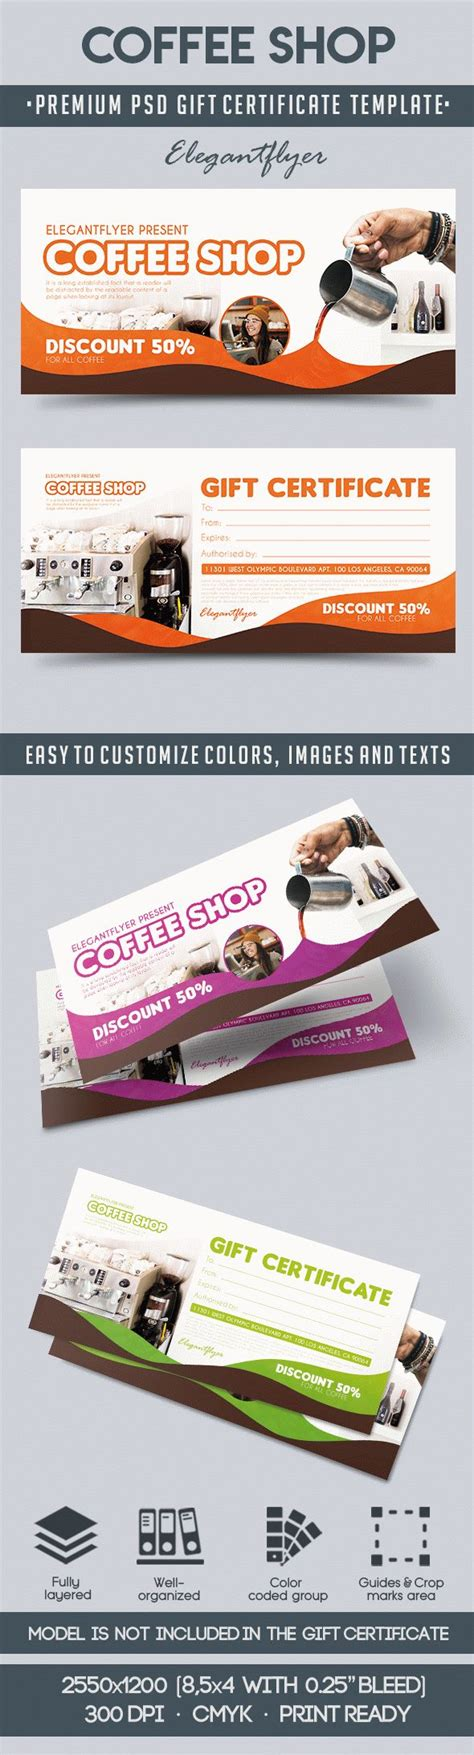 Coffee Shop Premium Gift Certificate Psd Template By Elegantflyer Coffee Shop Gift Certificate Template